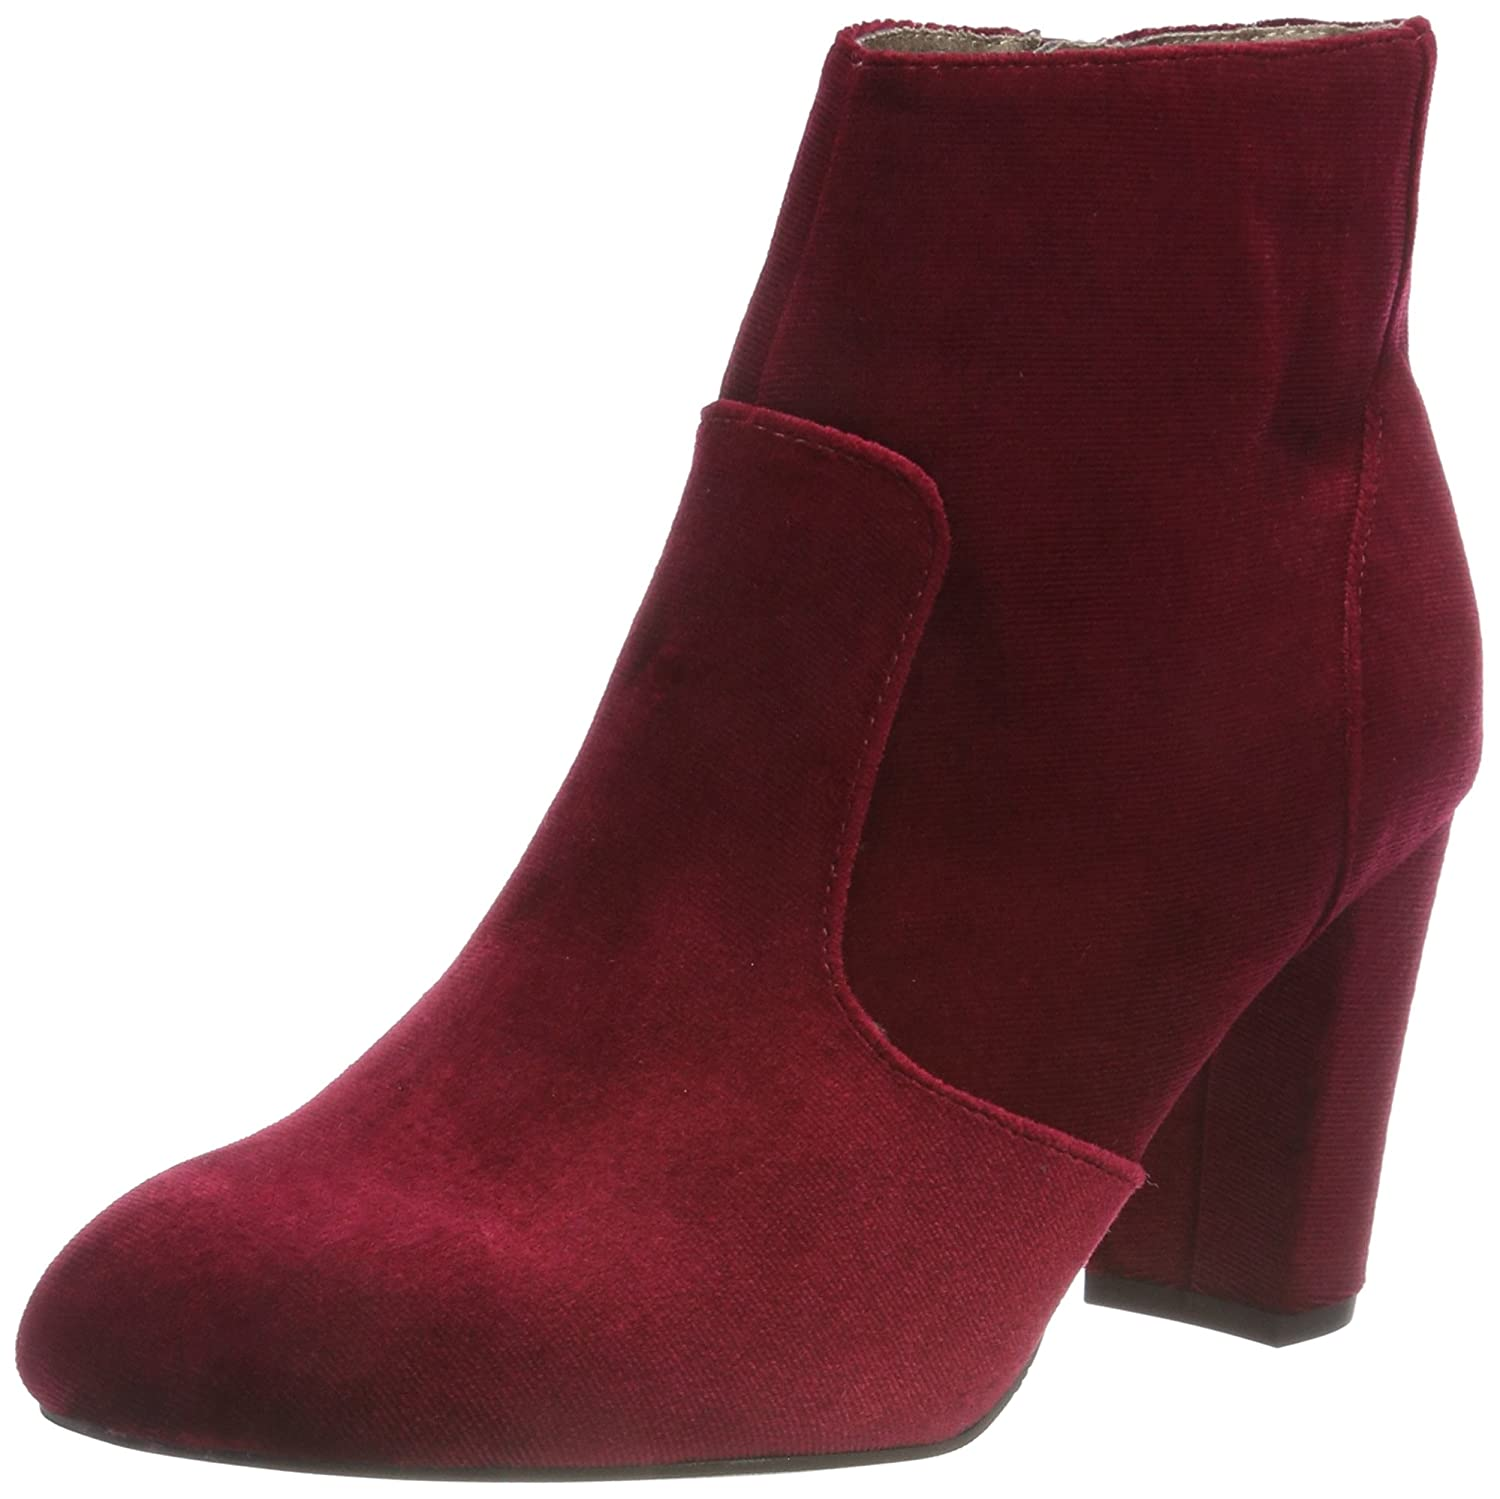 s.Oliver 9385 25300-31, Red Botines Femme Rouge Rouge (Dark Red 505) 5f4bc3c - conorscully.space